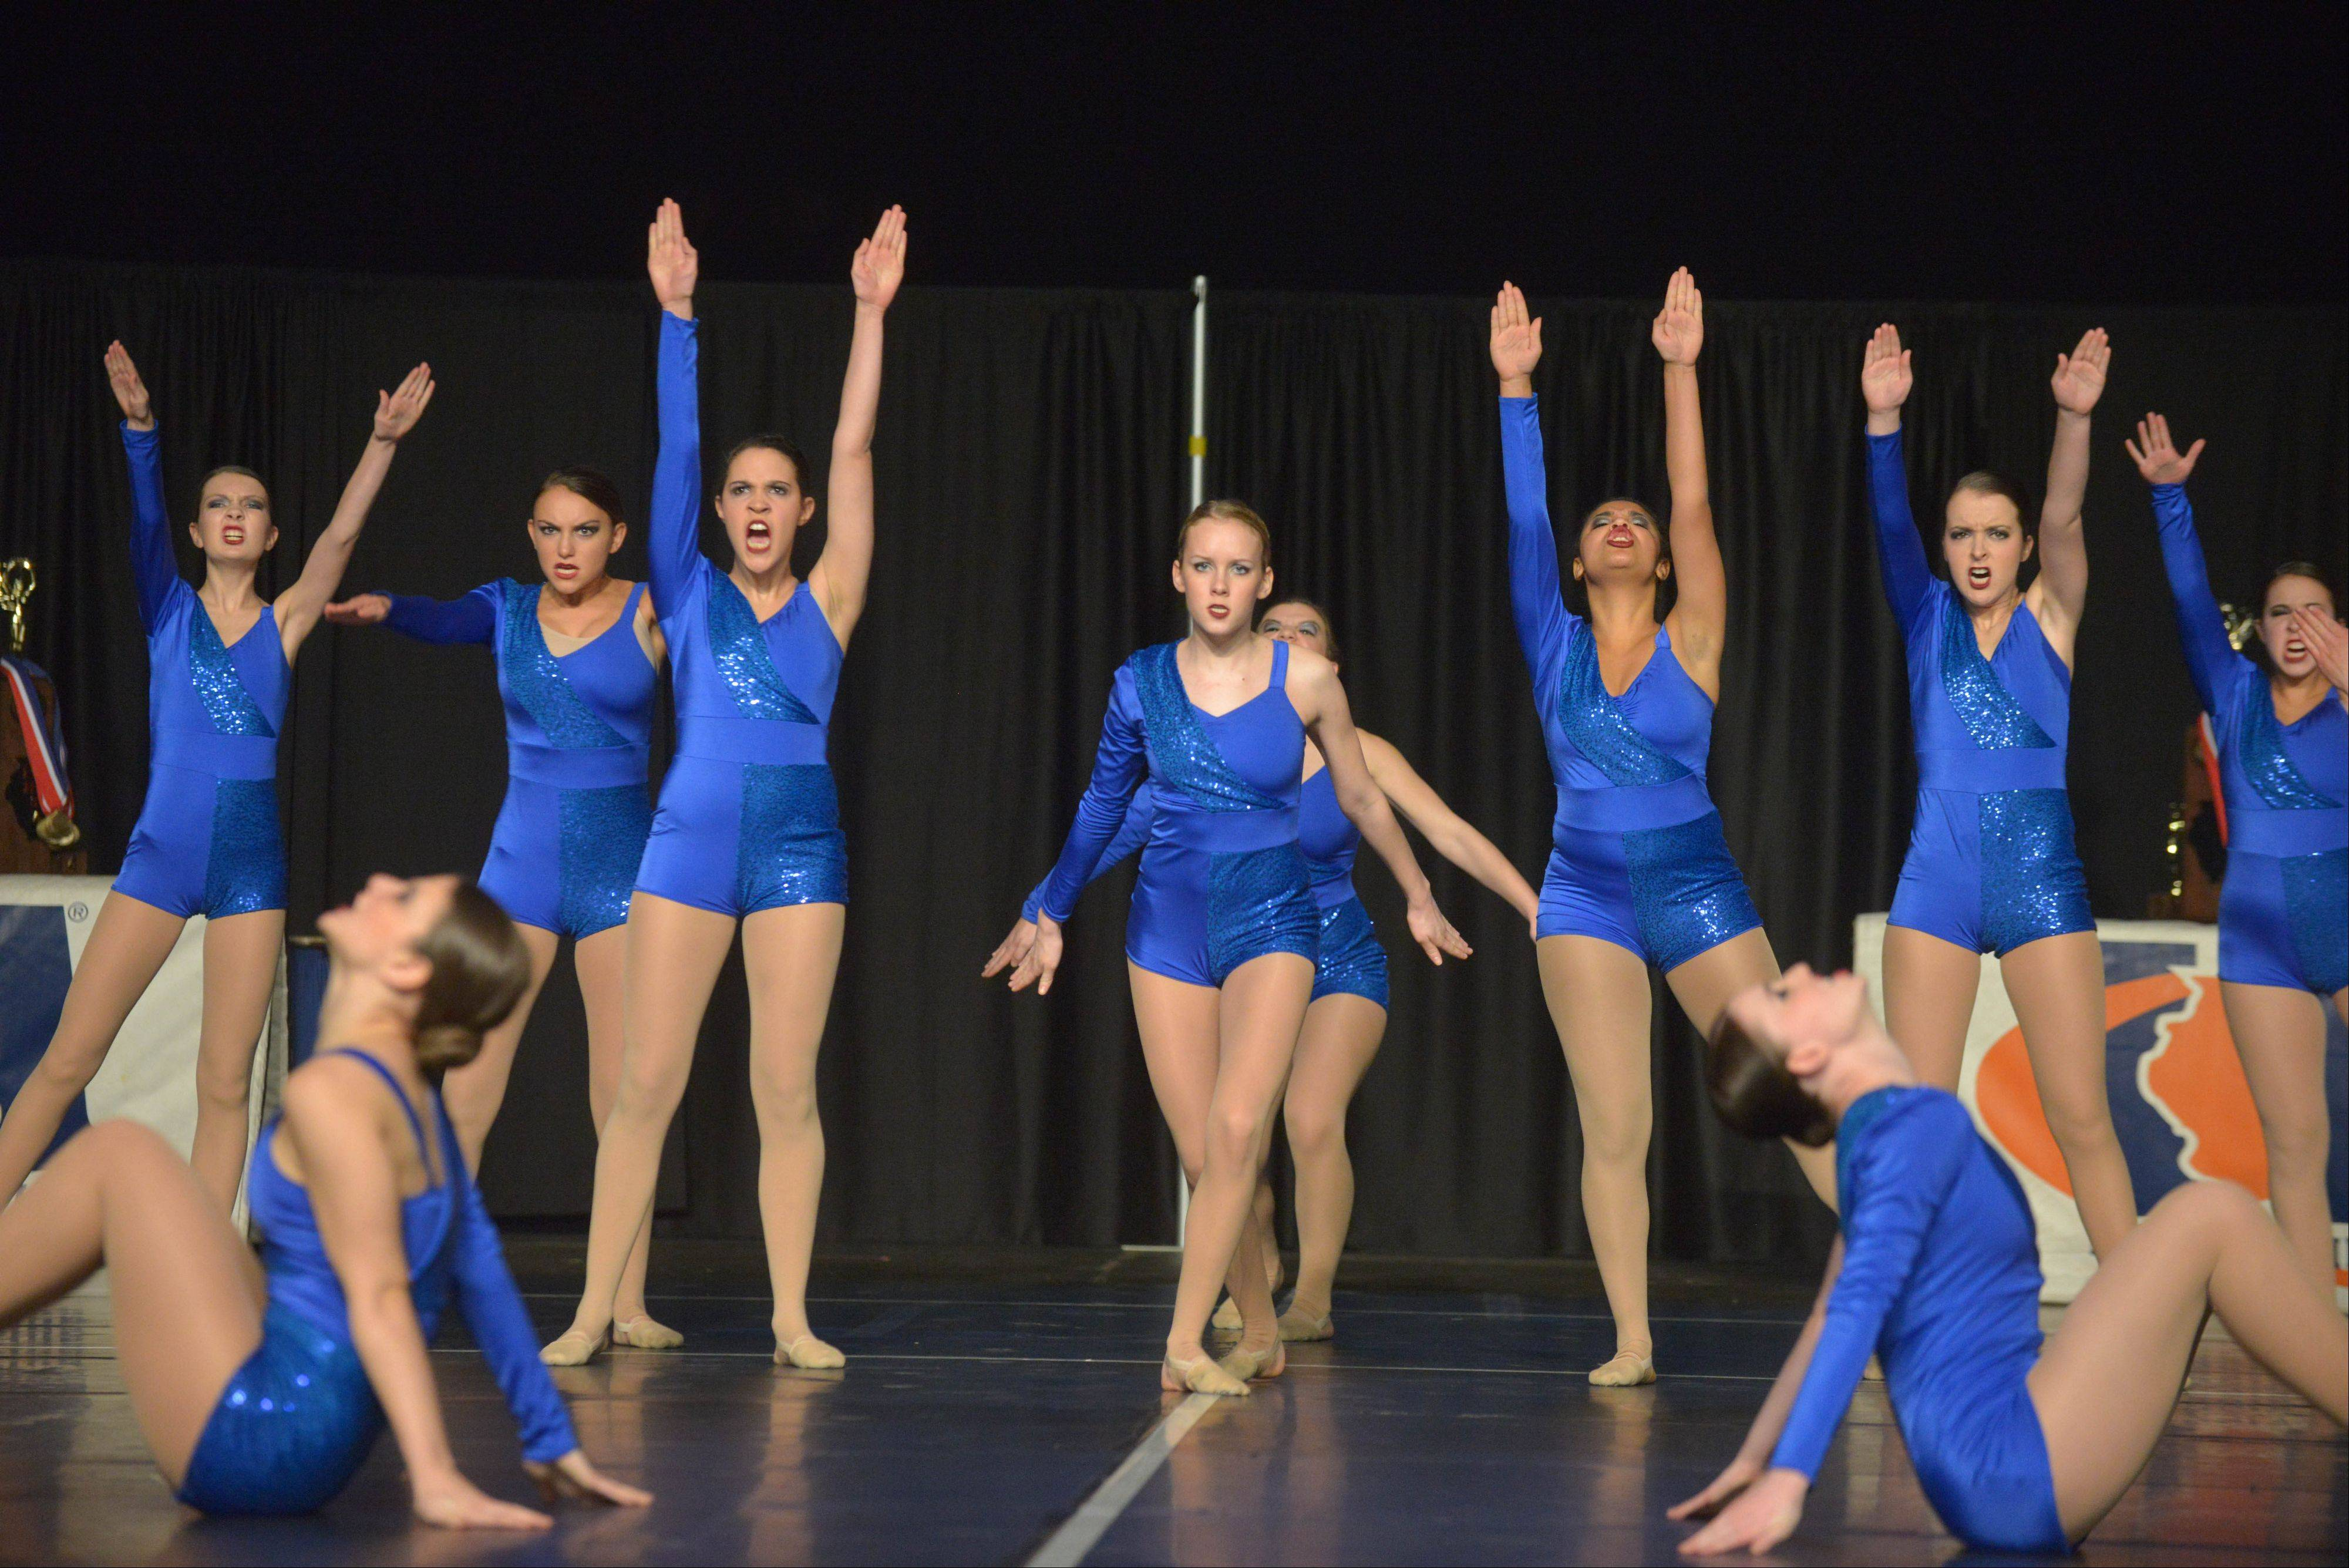 Vernon Hills High School took part in the IHSA Dance State Final at U.S. Cellular Coliseum in Bloomington Saturday. 90 teams vied for state champion at this event.